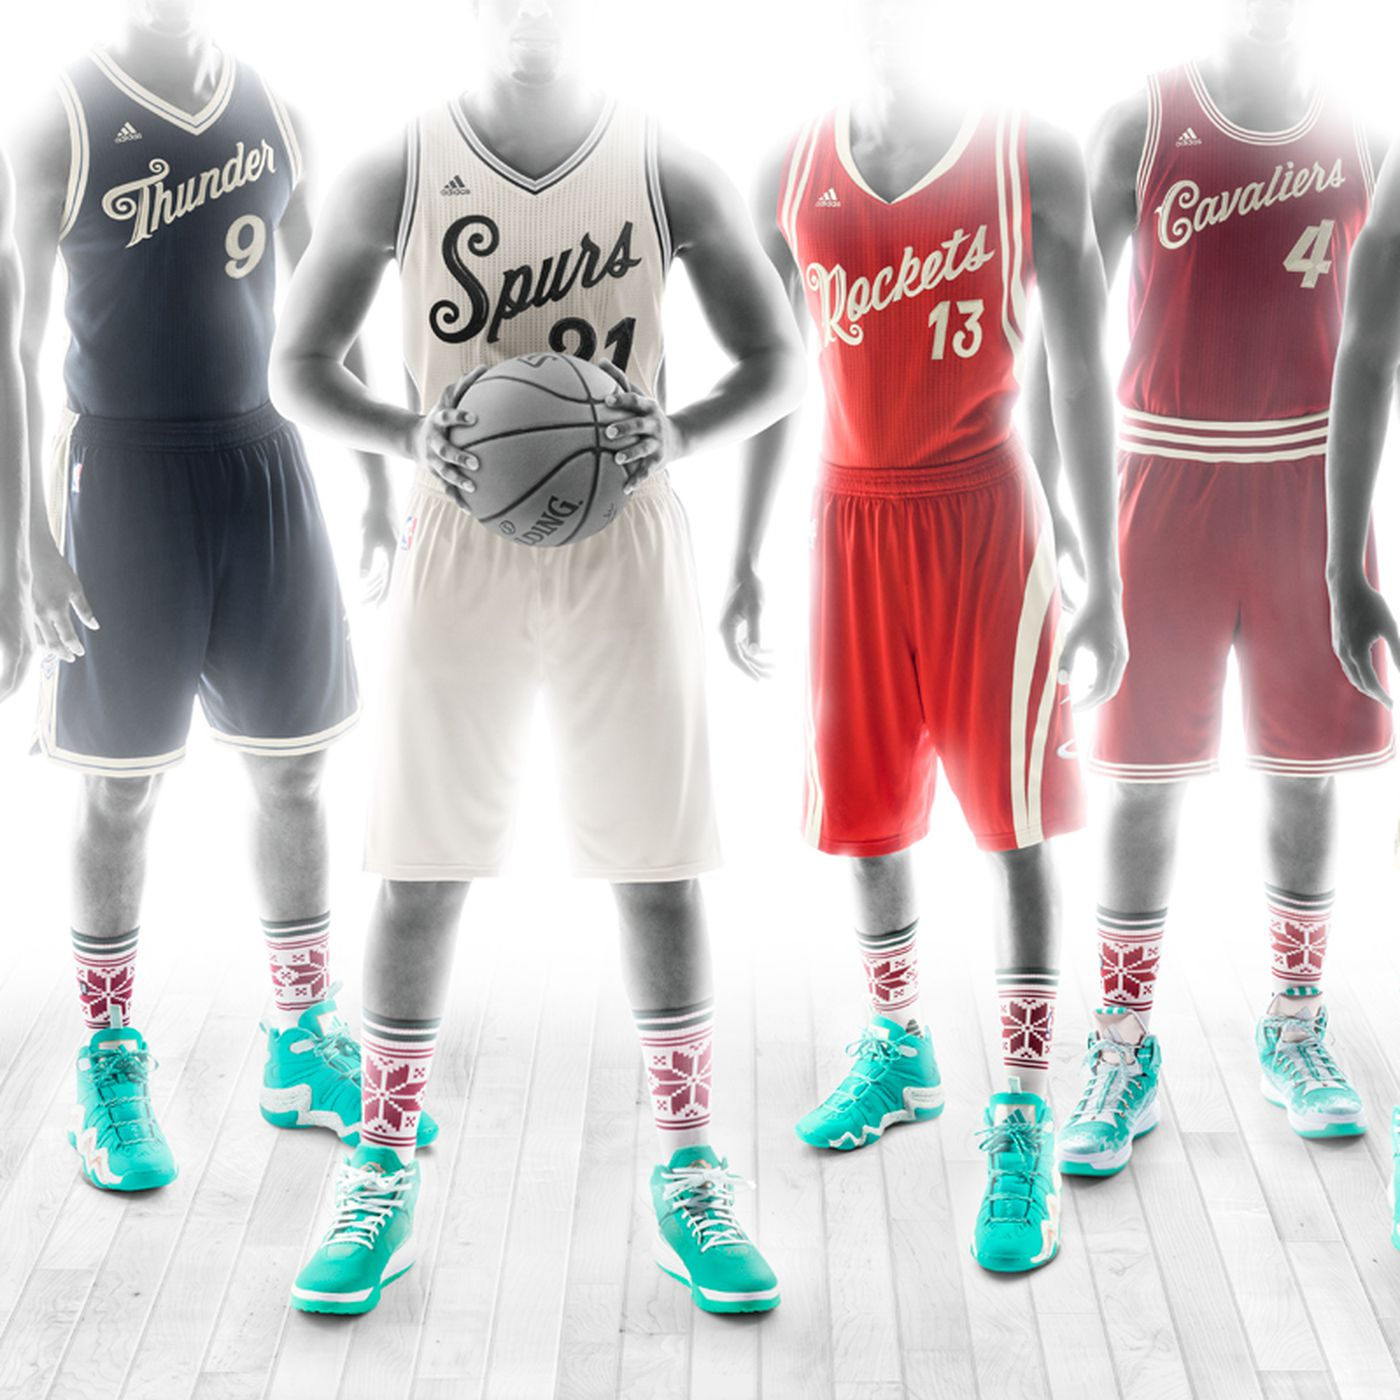 Christmas Jerseys Nba 2020 NBA Christmas jerseys 2015: Finally, a uniform that won't burn the